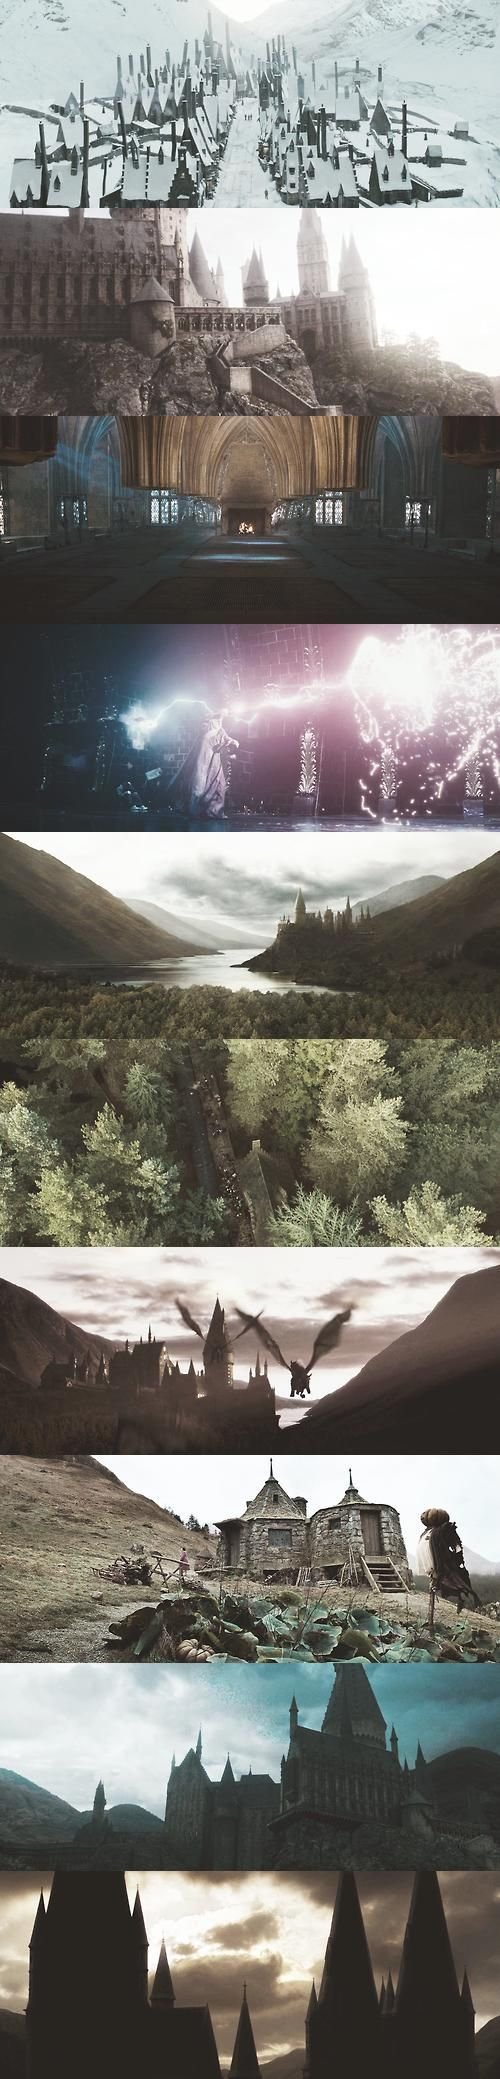 The world of Harry Potter: